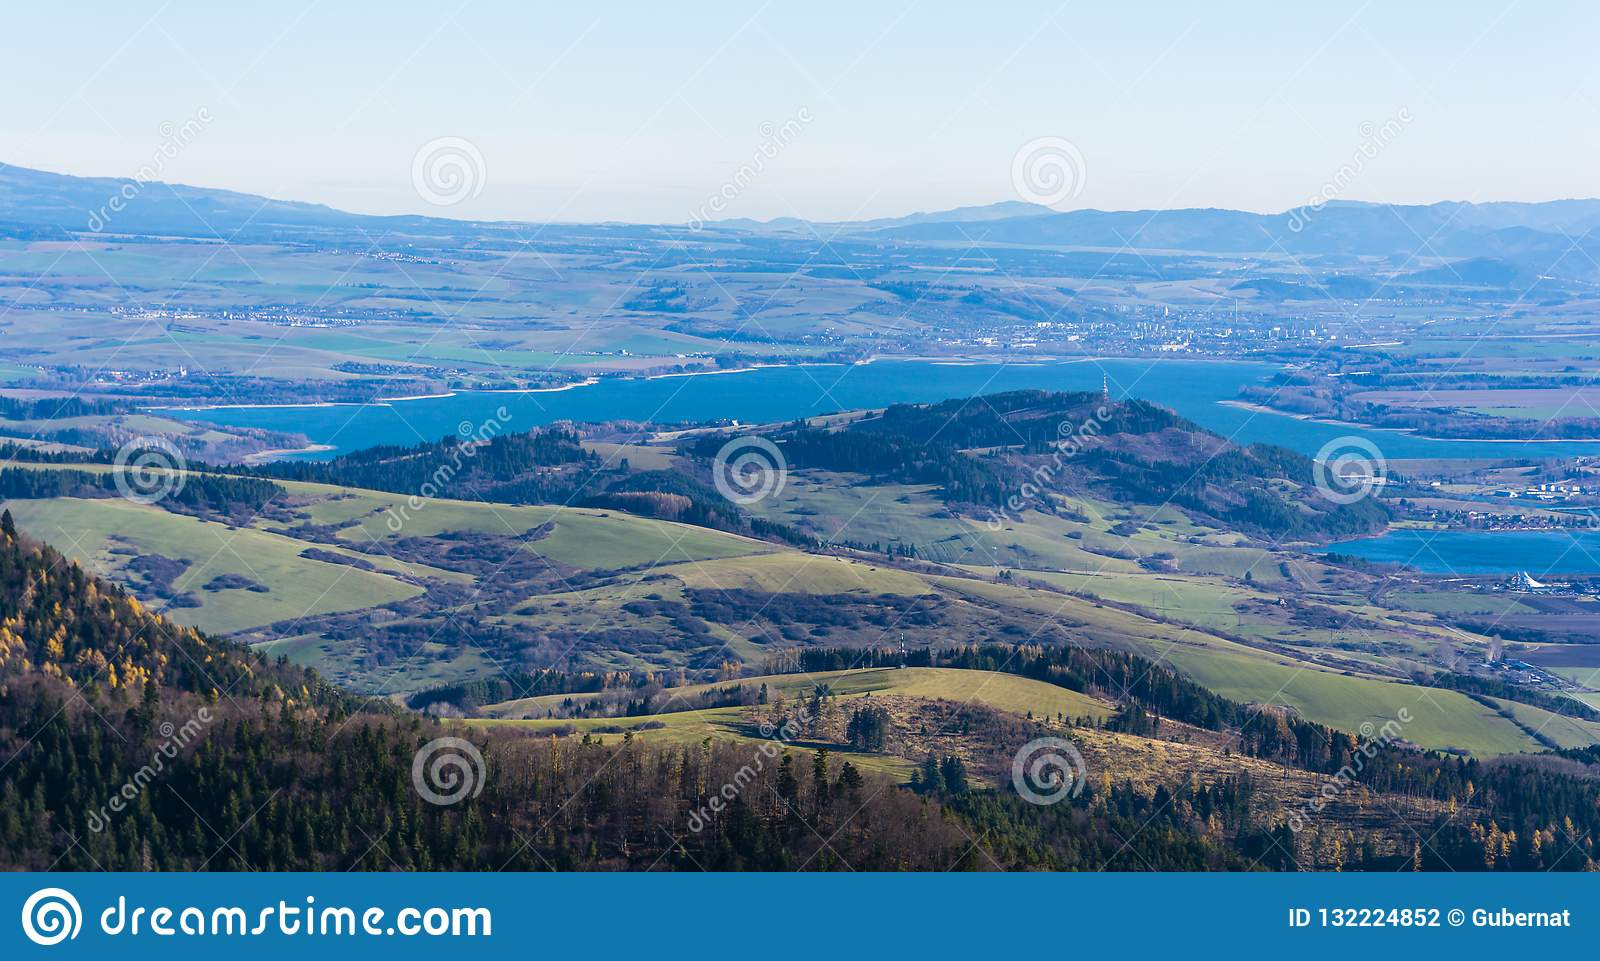 Autumn view of the lake Liptovska Mara and the town Liptovsky Mikulas in northern Slovakia